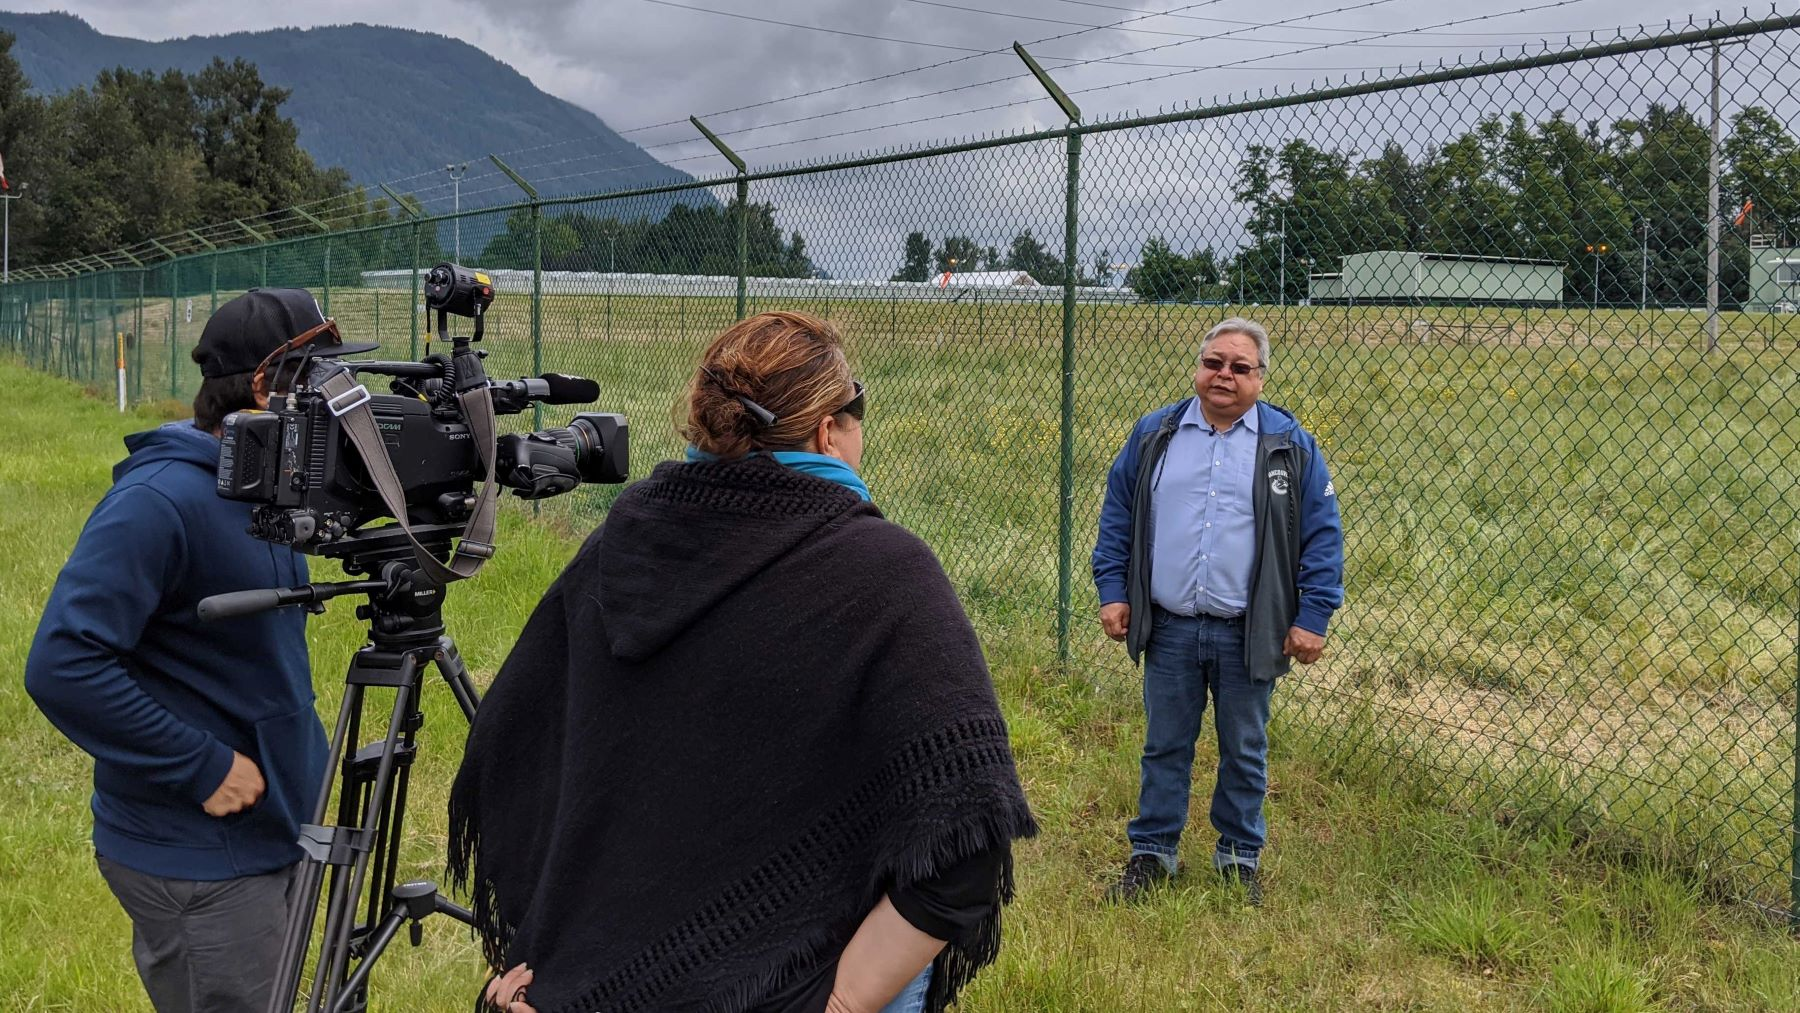 Chief Dalton Silver of Sumas First Nation speaking to media after recent oil spill (Photo: Rueben George)